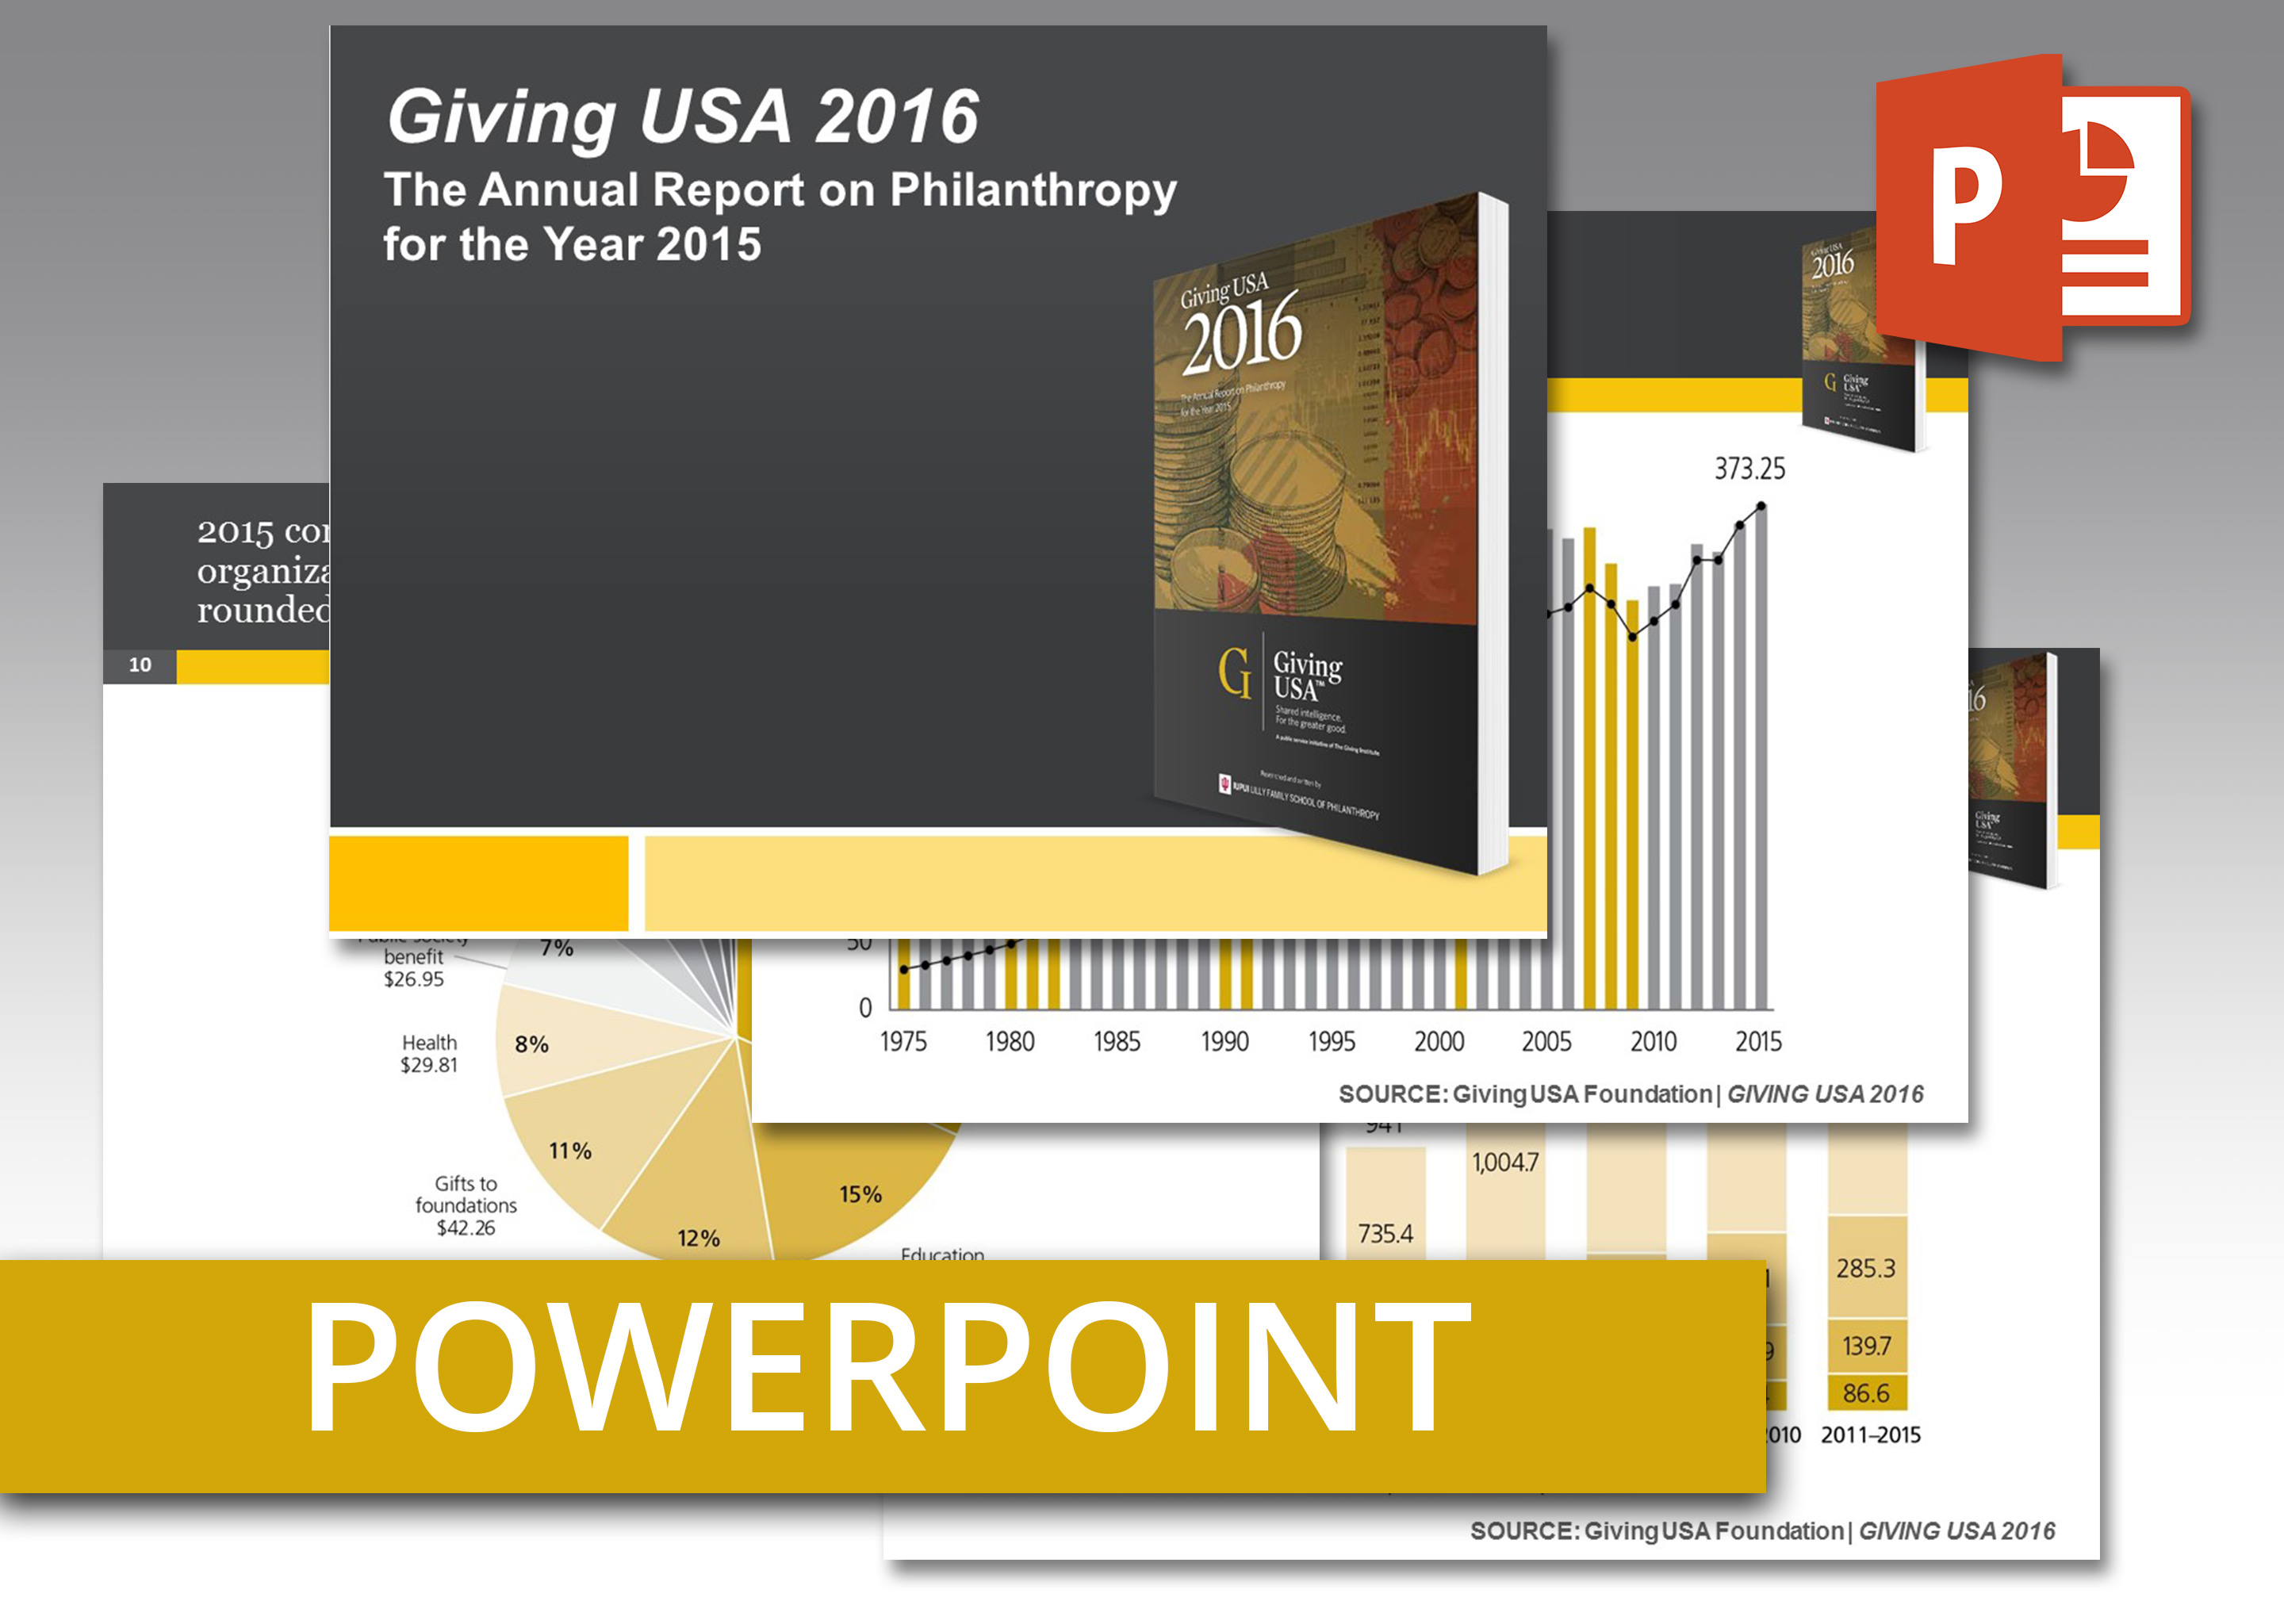 Usdgus  Pretty Giving Usa  Powerpoint An Easytouse Presentation Of Report  With Marvelous Giving Usa  Powerpoint An Easytouse Presentation Of Report Findings Including Talking Points With Charming Ms Office  Powerpoint Templates Also Basic Life Support Powerpoint Presentation In Addition Poster Format In Powerpoint And Powerpoint Download Free  Full Version As Well As Powerpoint For Vista Additionally Design Powerpoint Slide From Givingusaorg With Usdgus  Marvelous Giving Usa  Powerpoint An Easytouse Presentation Of Report  With Charming Giving Usa  Powerpoint An Easytouse Presentation Of Report Findings Including Talking Points And Pretty Ms Office  Powerpoint Templates Also Basic Life Support Powerpoint Presentation In Addition Poster Format In Powerpoint From Givingusaorg